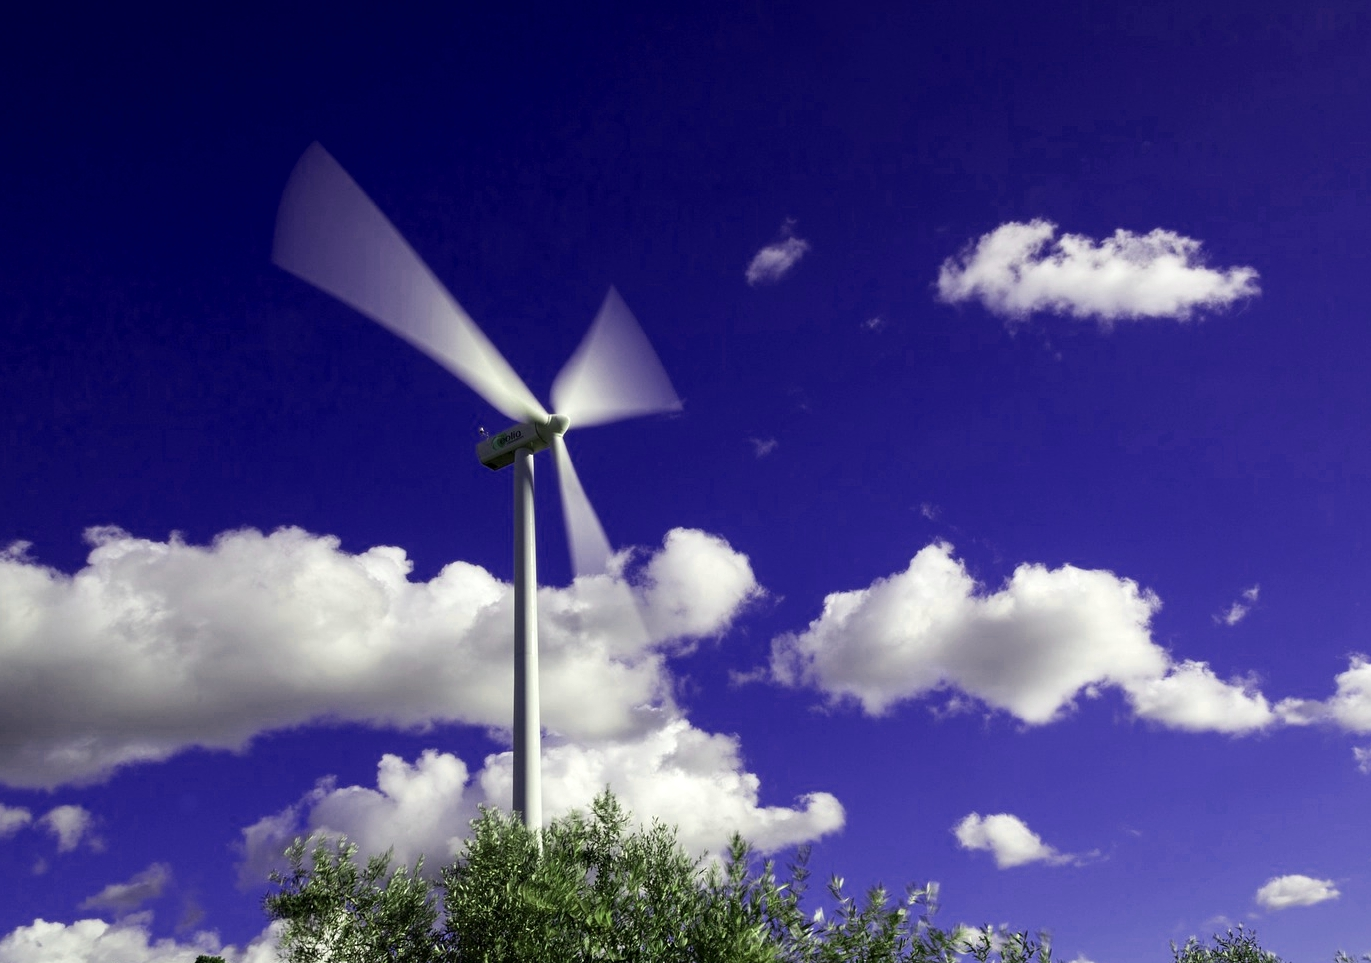 Electrical generating wind turbine - Pixabay